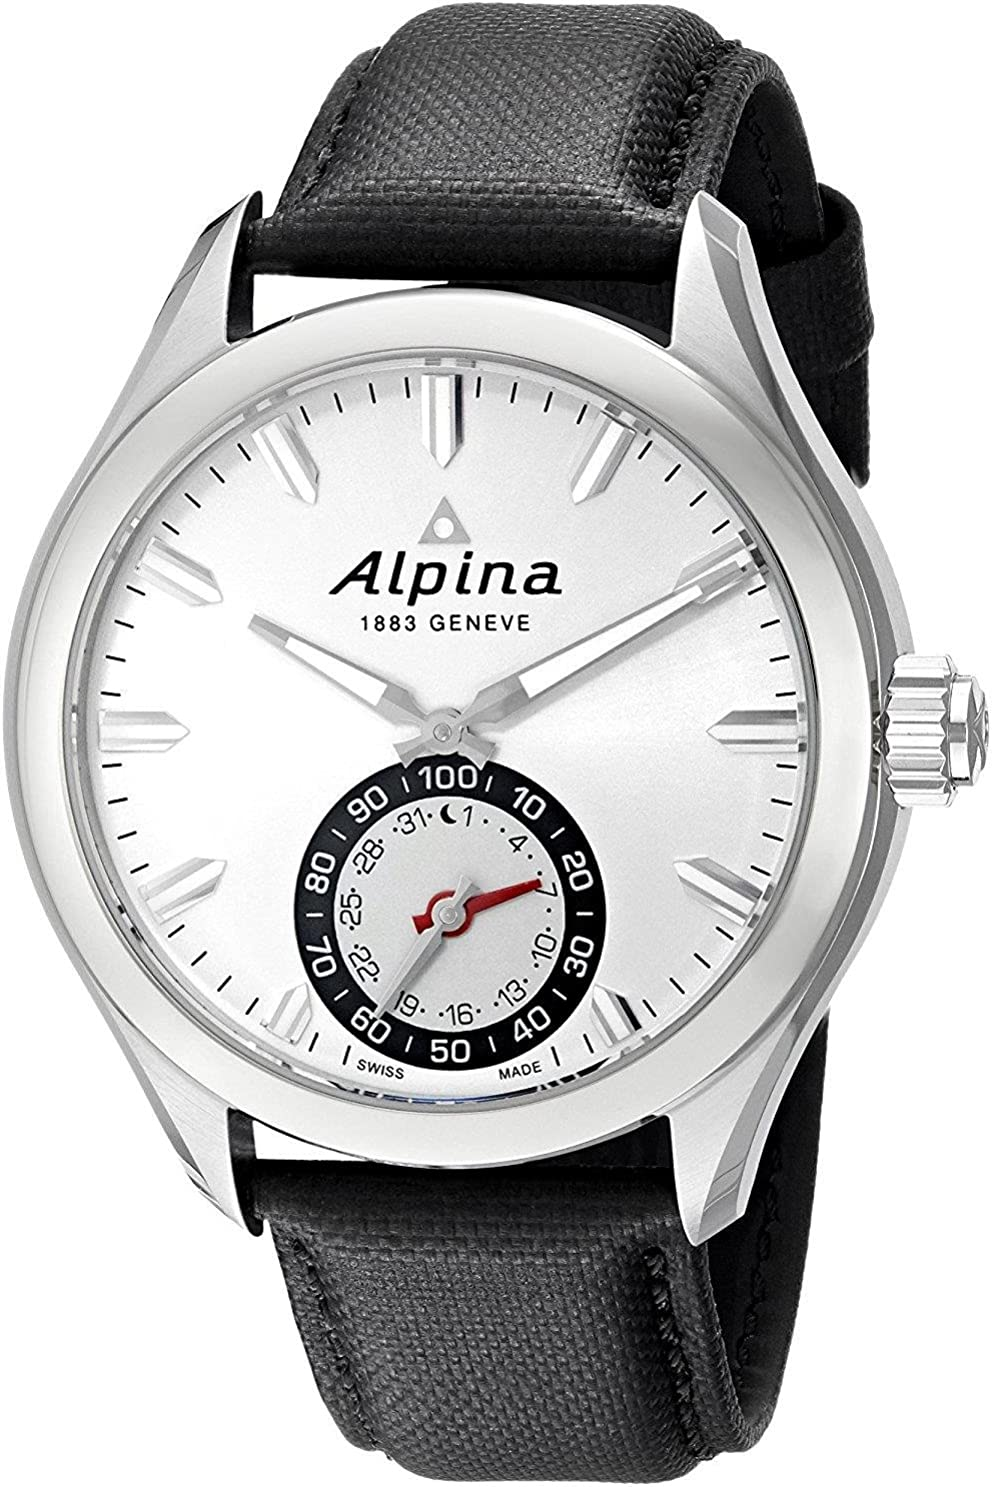 Alpina Horological Smartwatch Mens Fitness Watch - 44mm Silver Face Swiss Quartz 2 Year Battery Life Running Watch - Black Leather Band Water ...